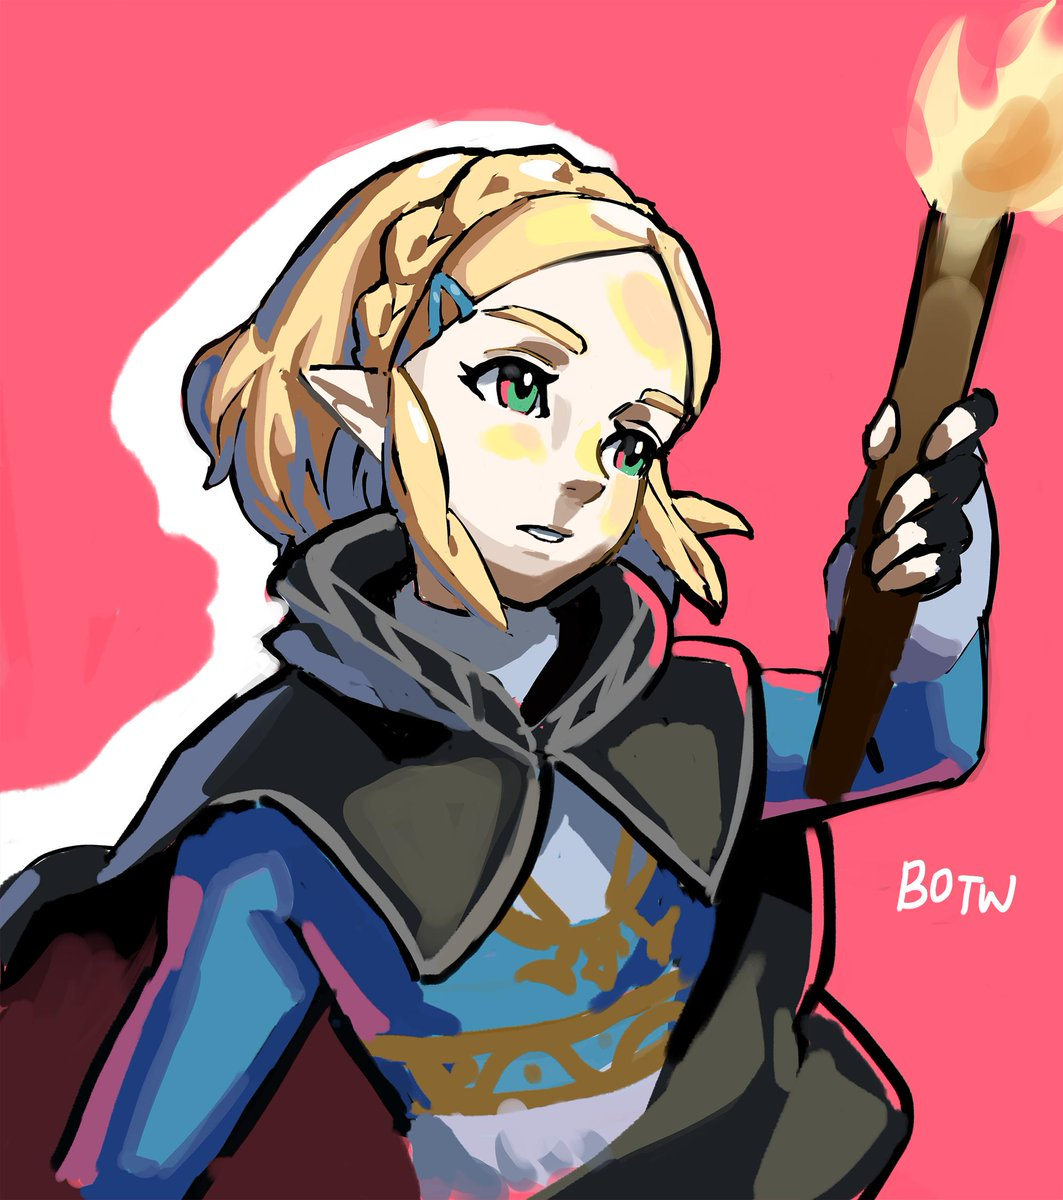 Short Hair Zelda The Legend Of Zelda Breath Of The Wild Know Your Meme